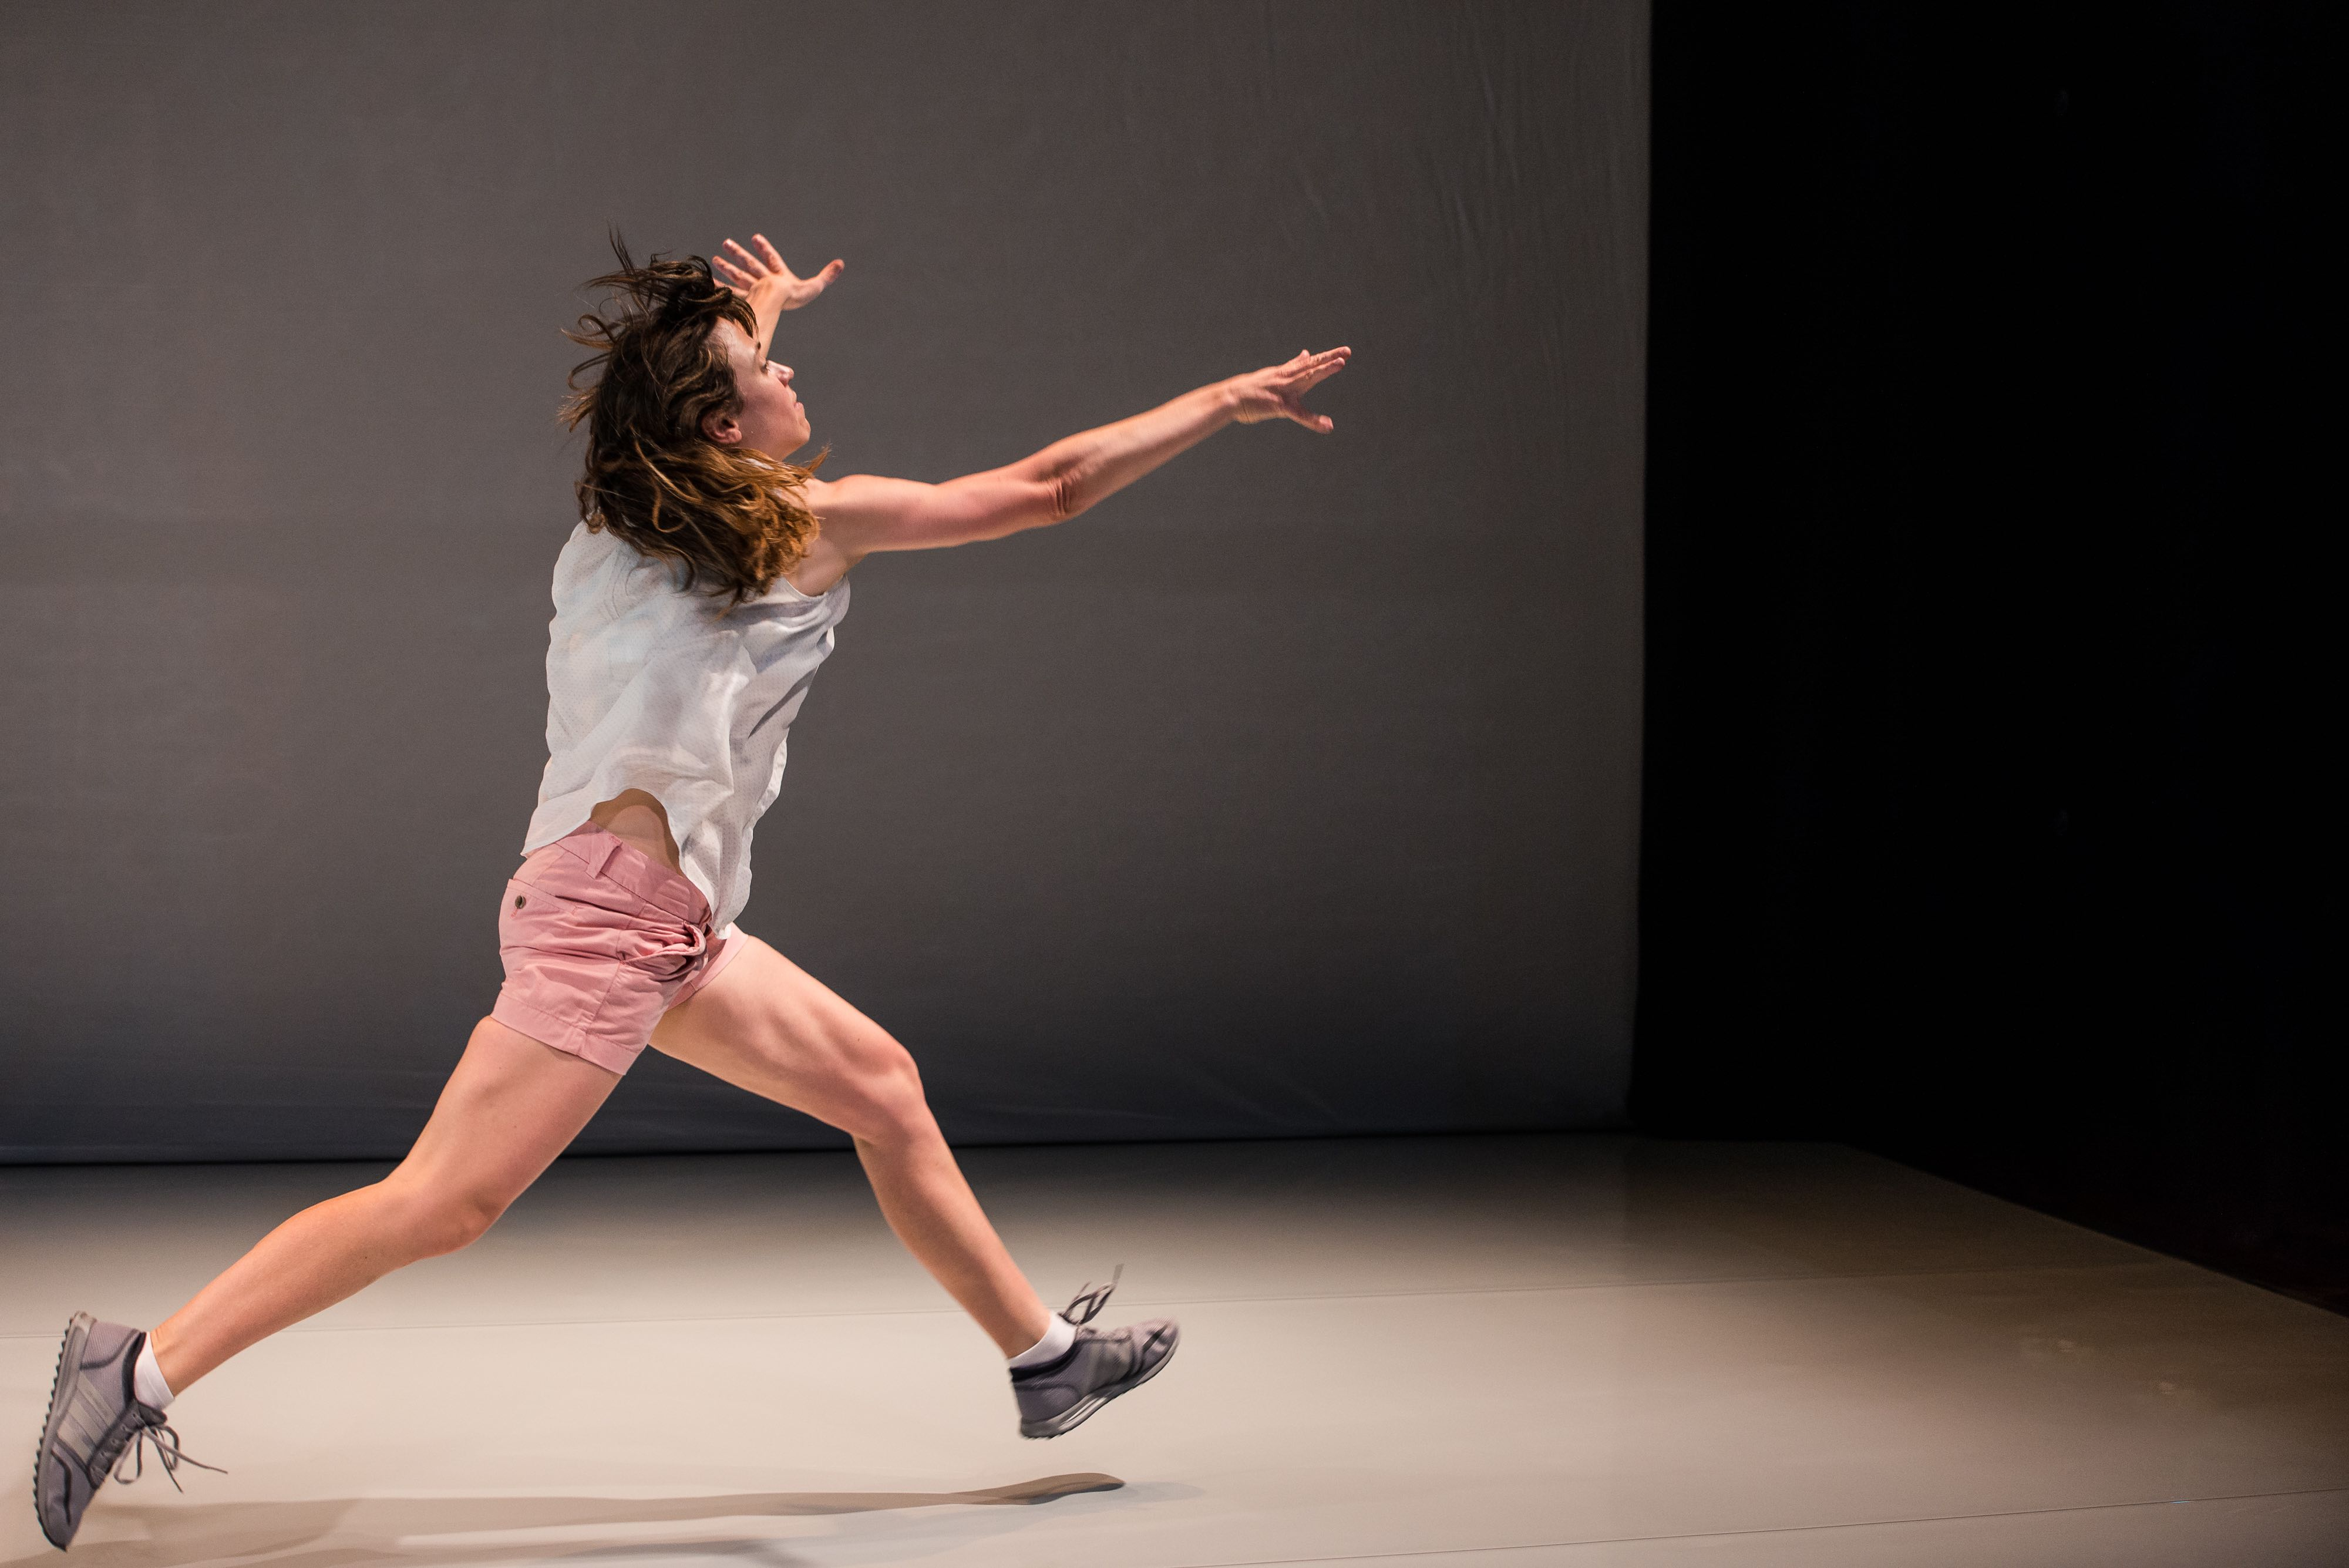 performer in white and pink dancing alone